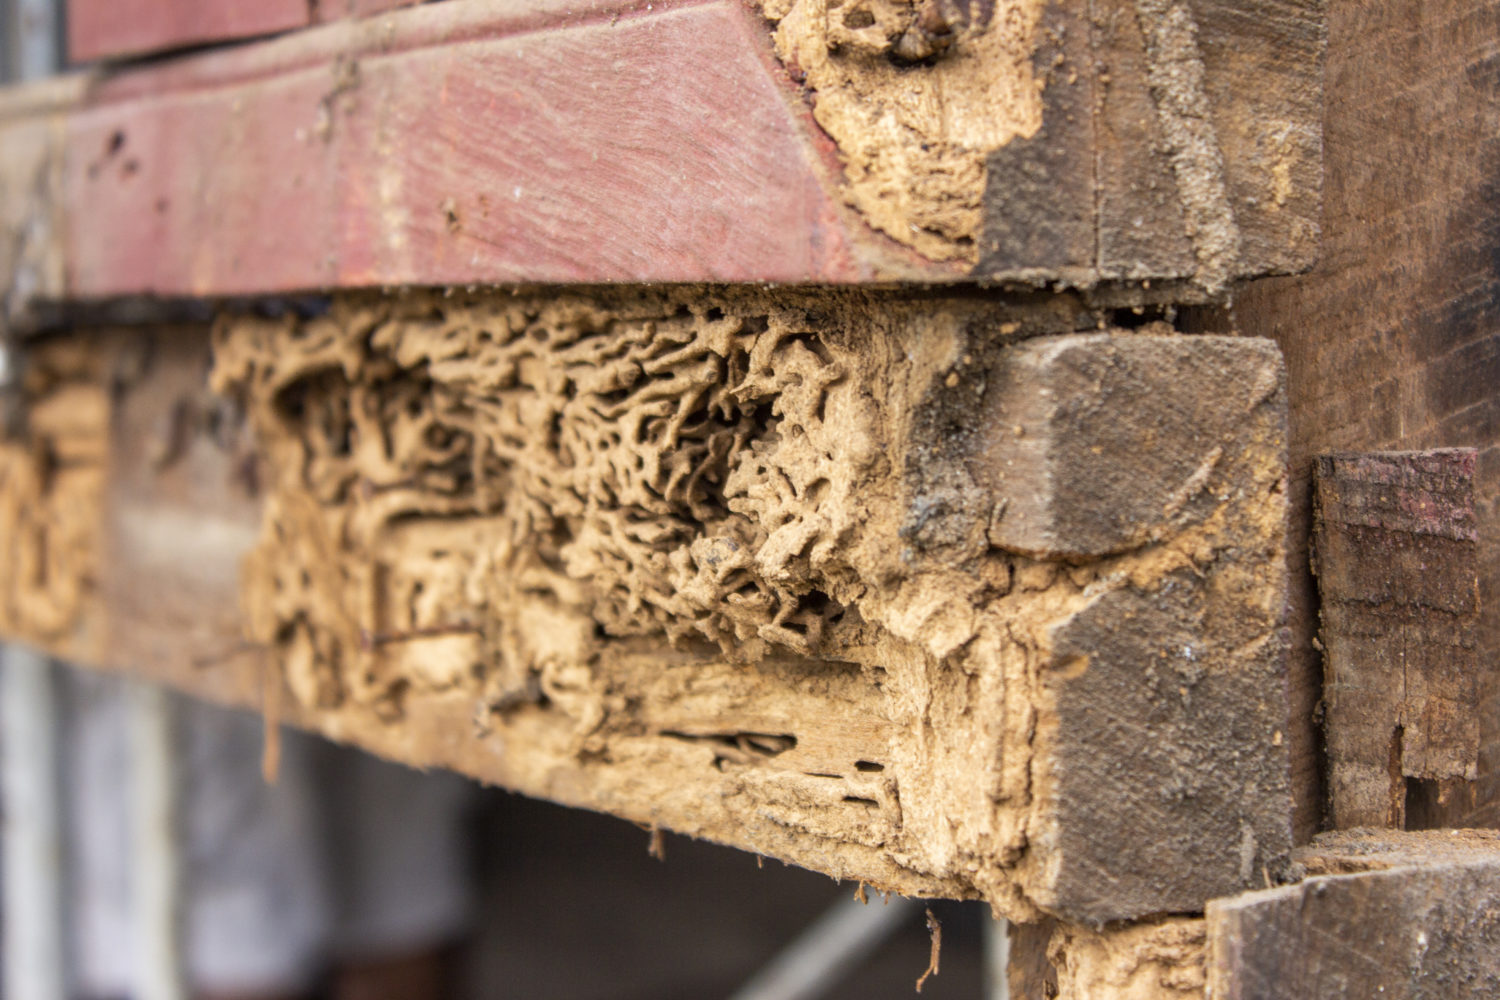 a home with termite damage